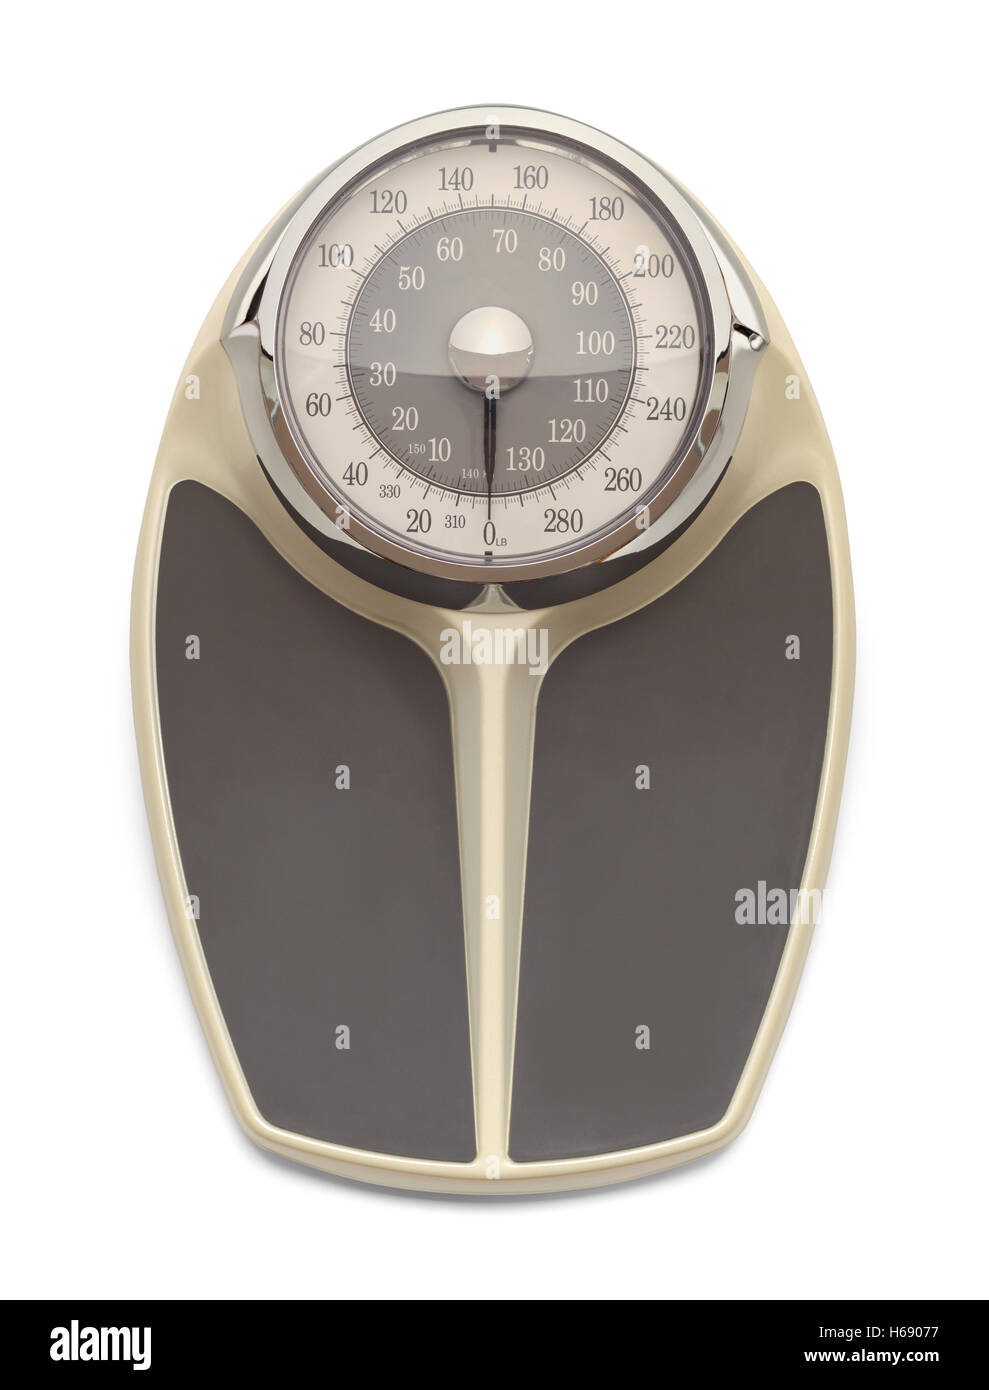 Large Old Fashion Weight Scale Isolated on White Background. - Stock Image